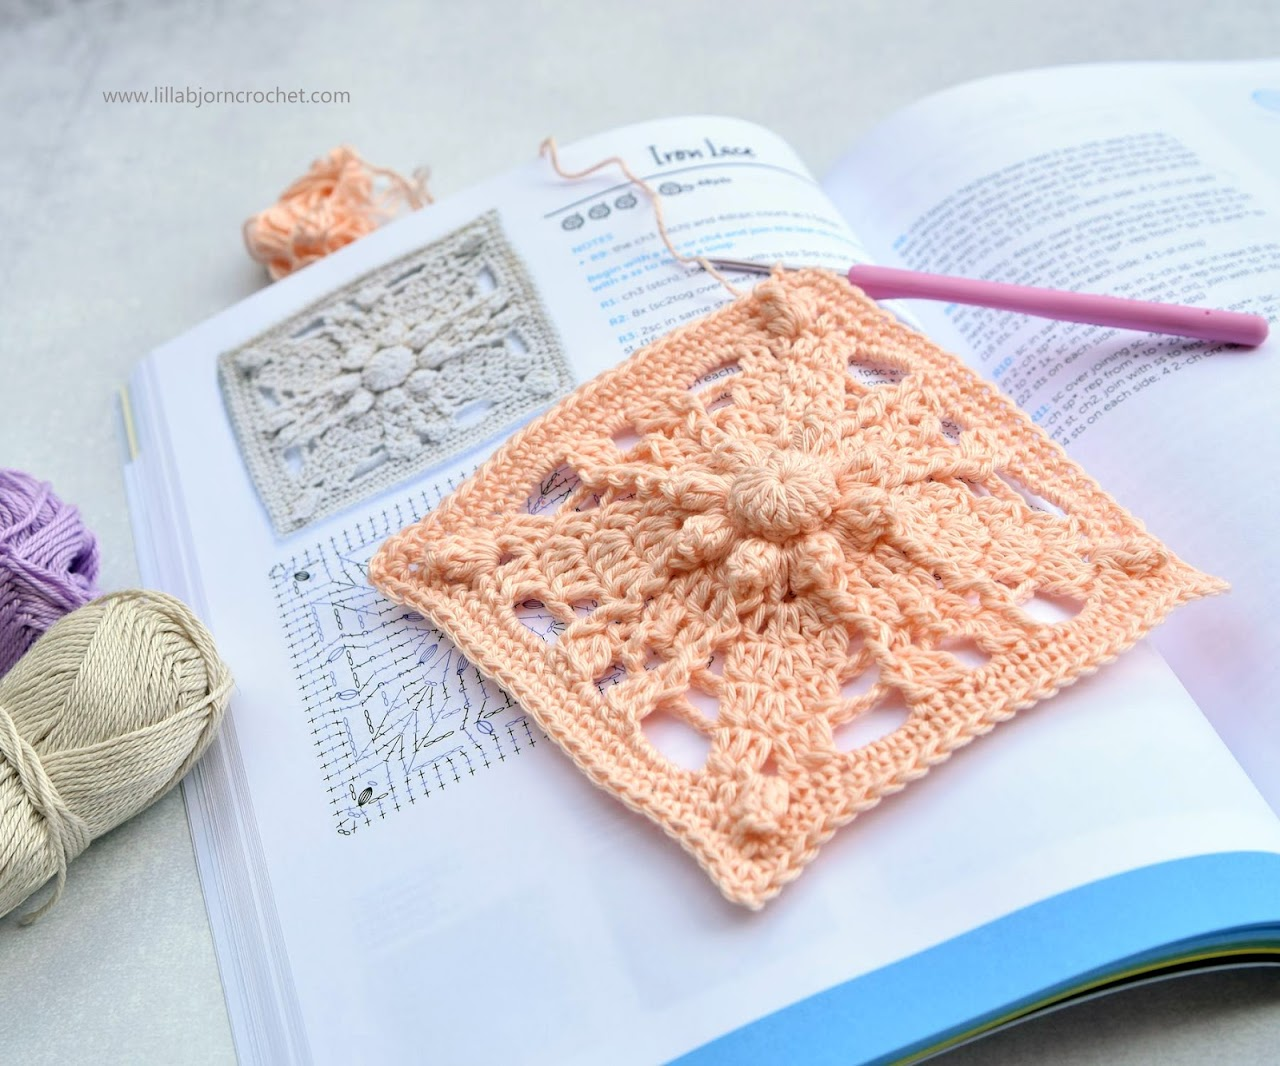 Granny Square Flair book by Shelley Husband of @Spincushions. Reviewed by www.lillabjorncrochet.com